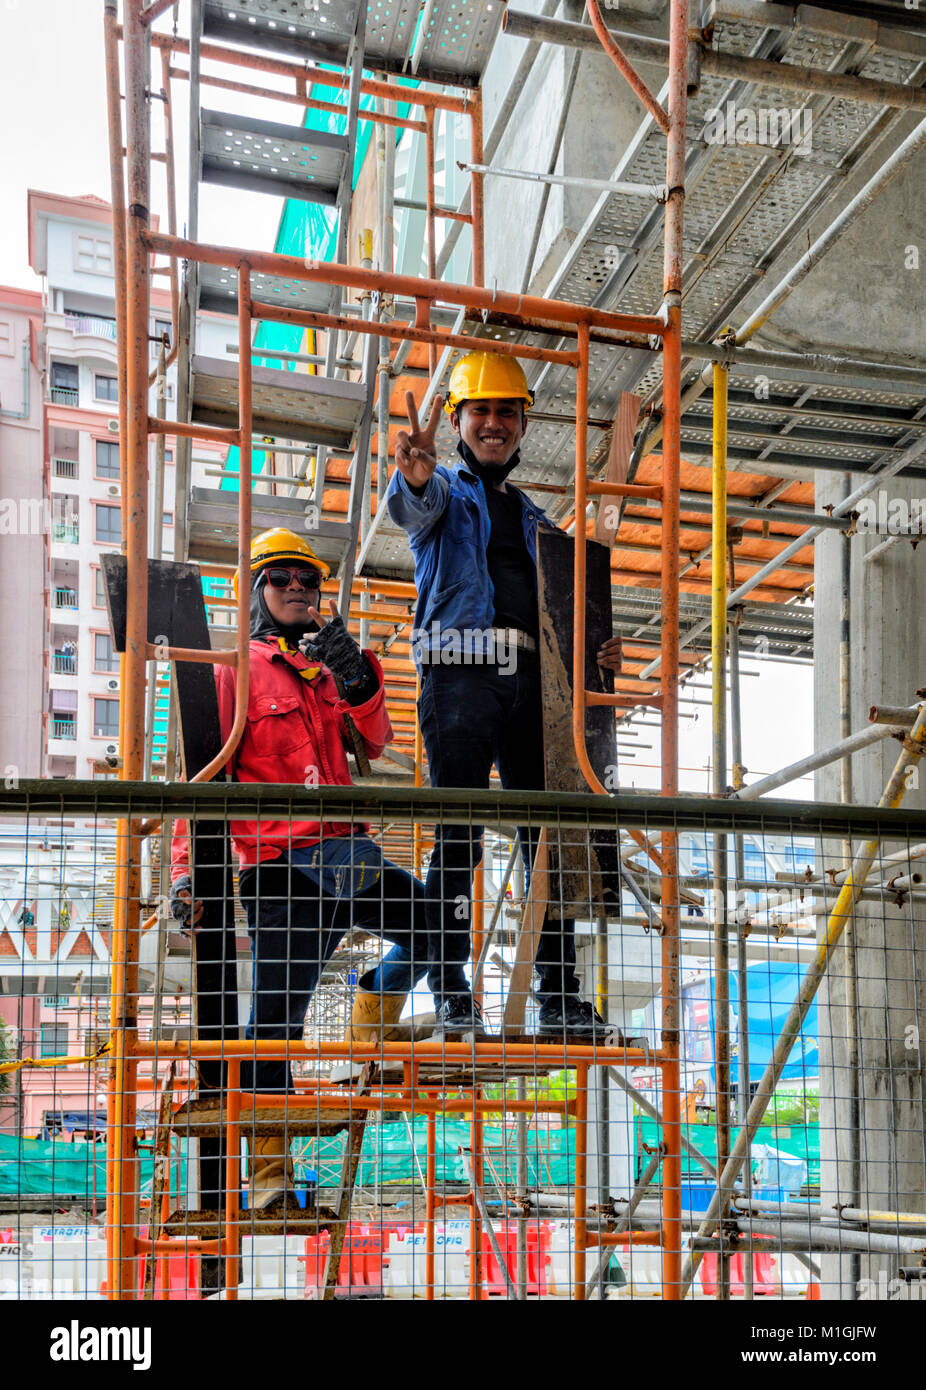 Workers on scaffoldings in town centre, Kota Kinabalu, Sabah, Borneo, Malaysia - Stock Image